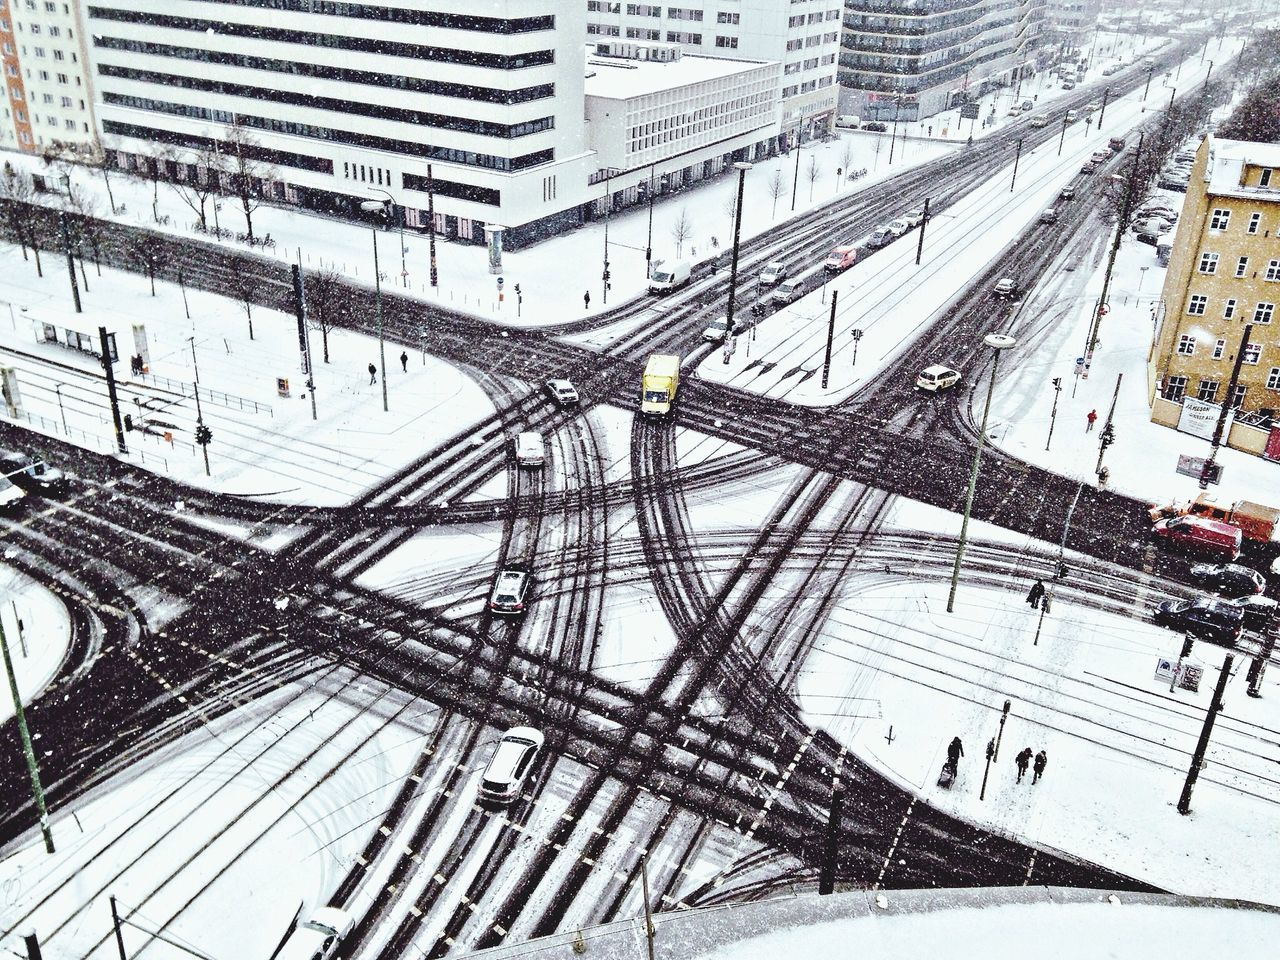 High angle view of snow covered street in city